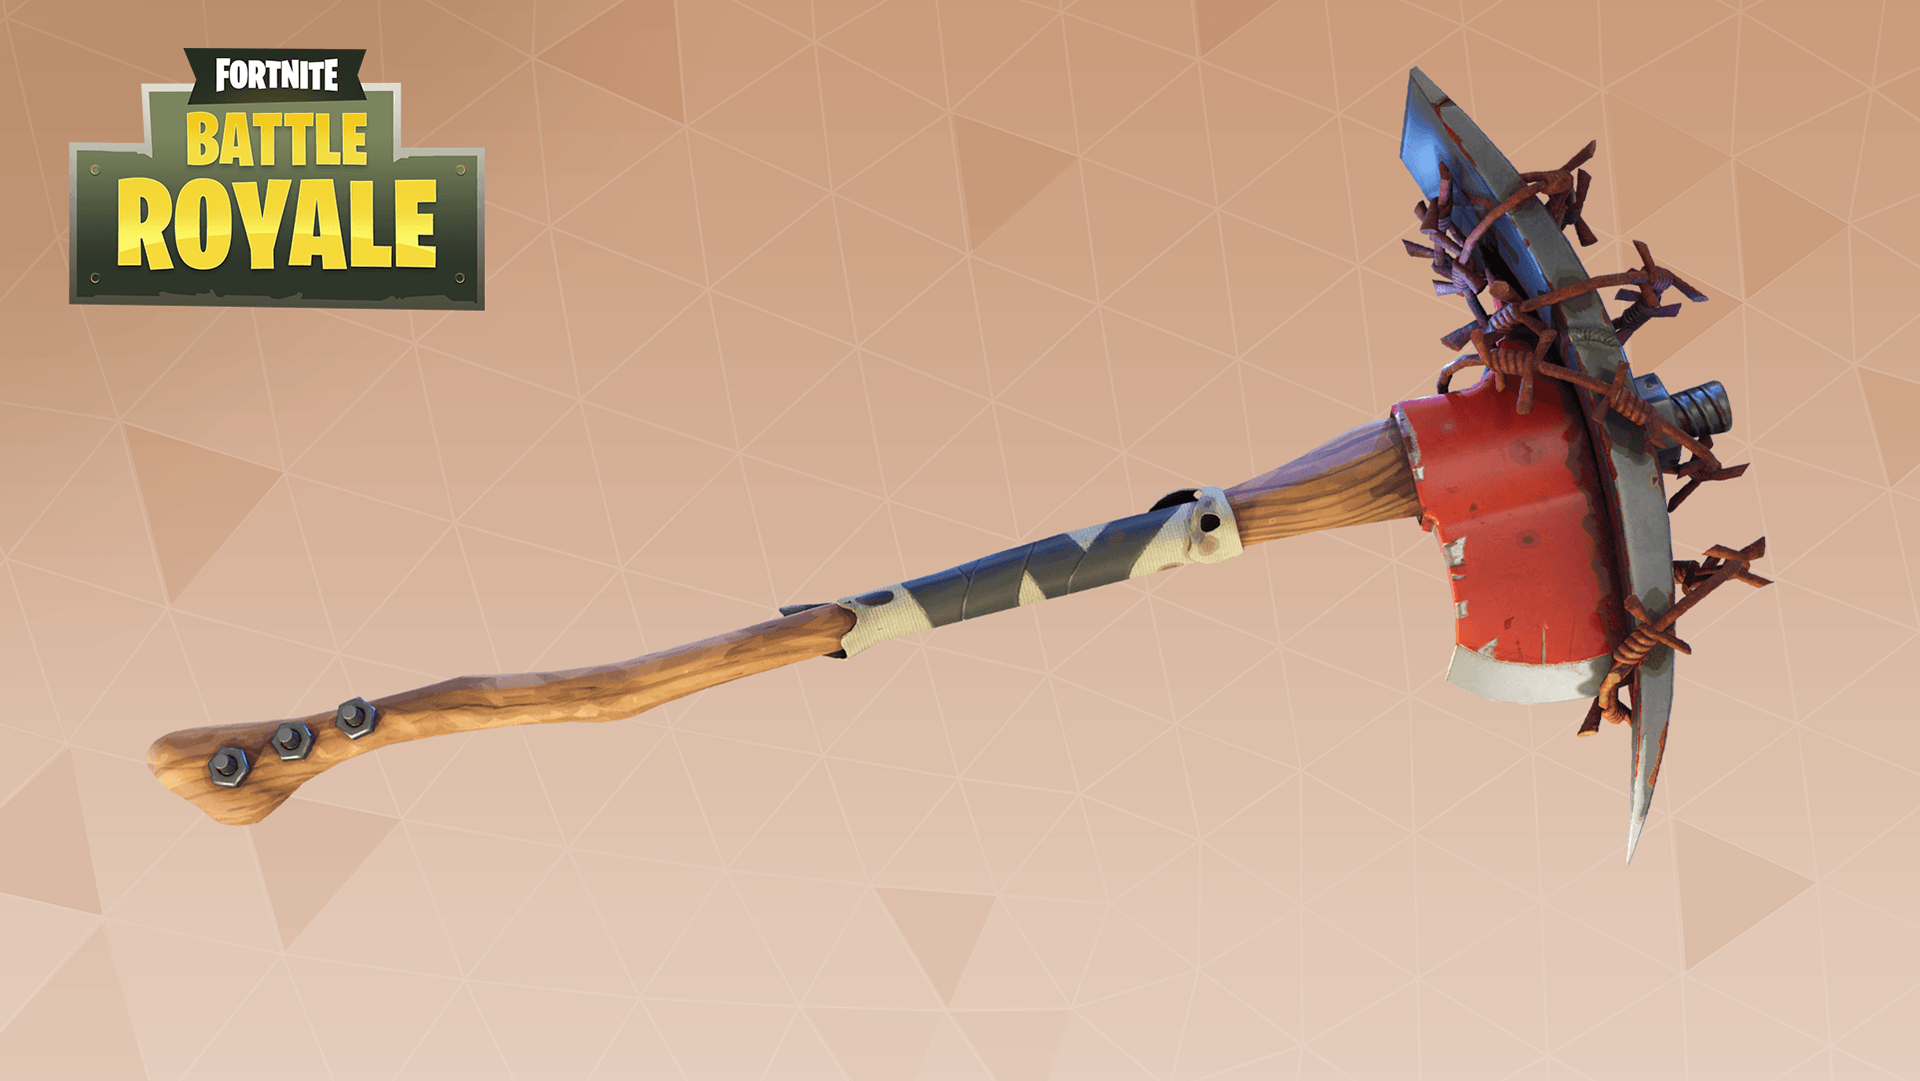 Raider's Revenge Fortnite Pickaxe